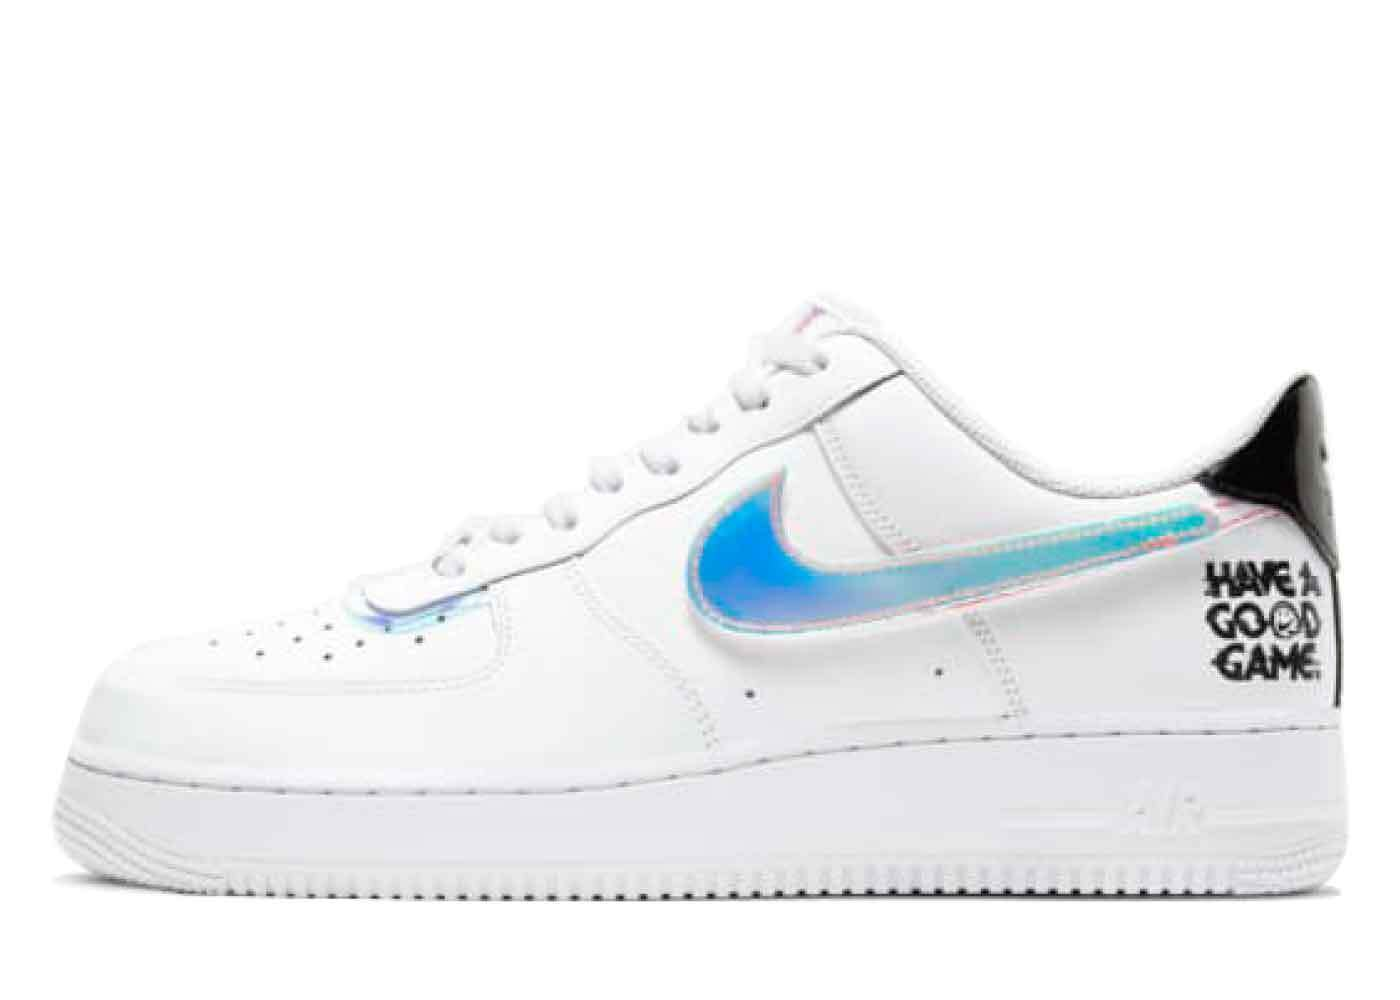 Nike Air Force 1 07 Have a Good Gameの写真